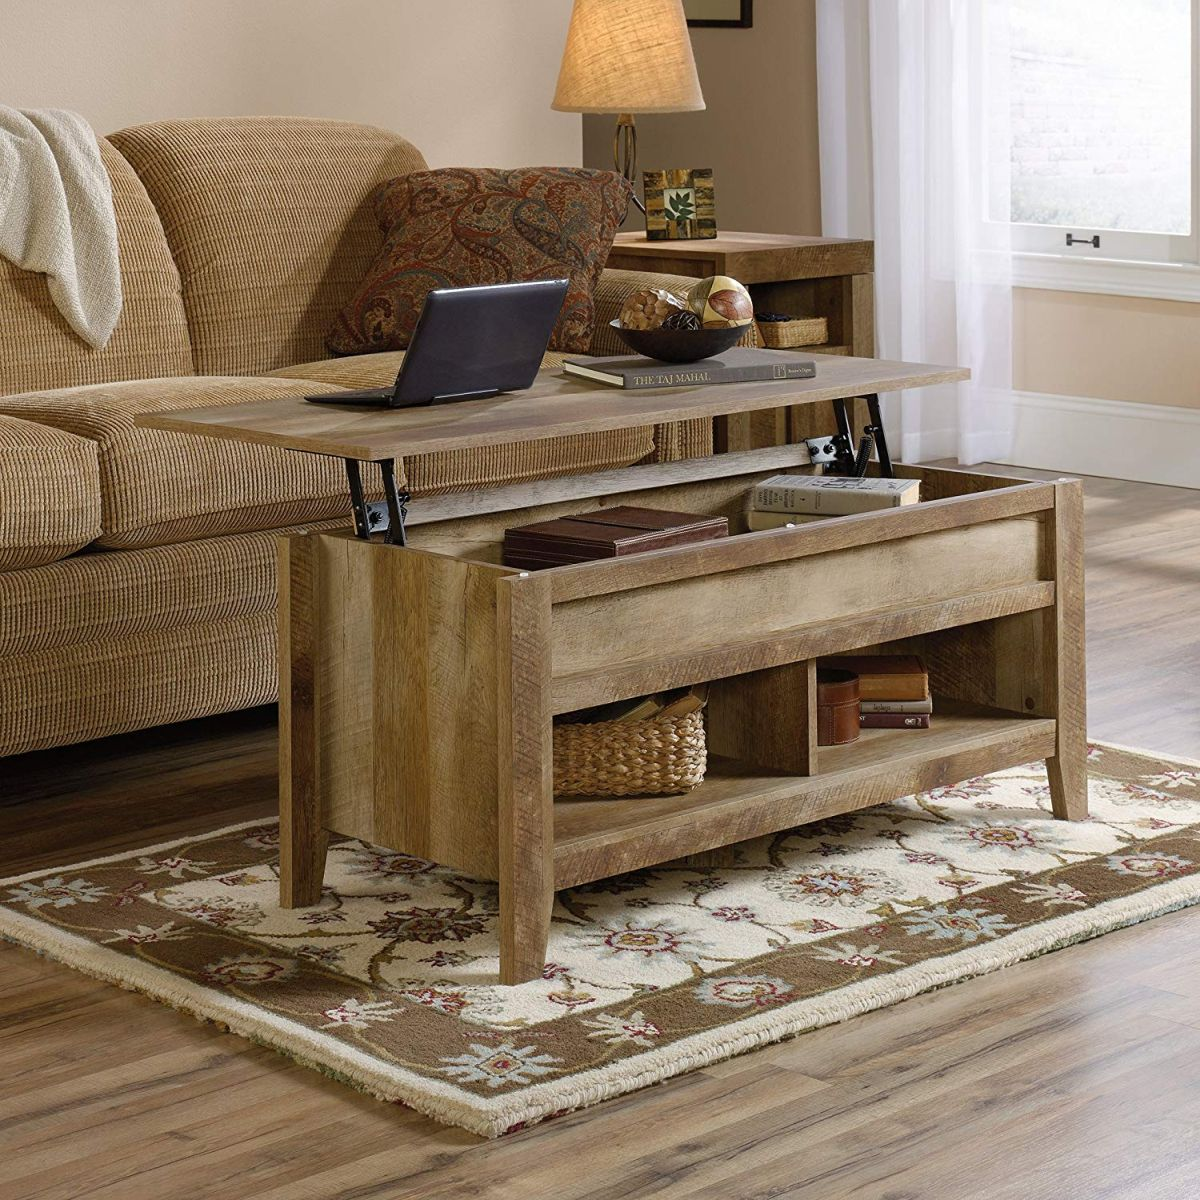 21 lift top coffee tables that surprise